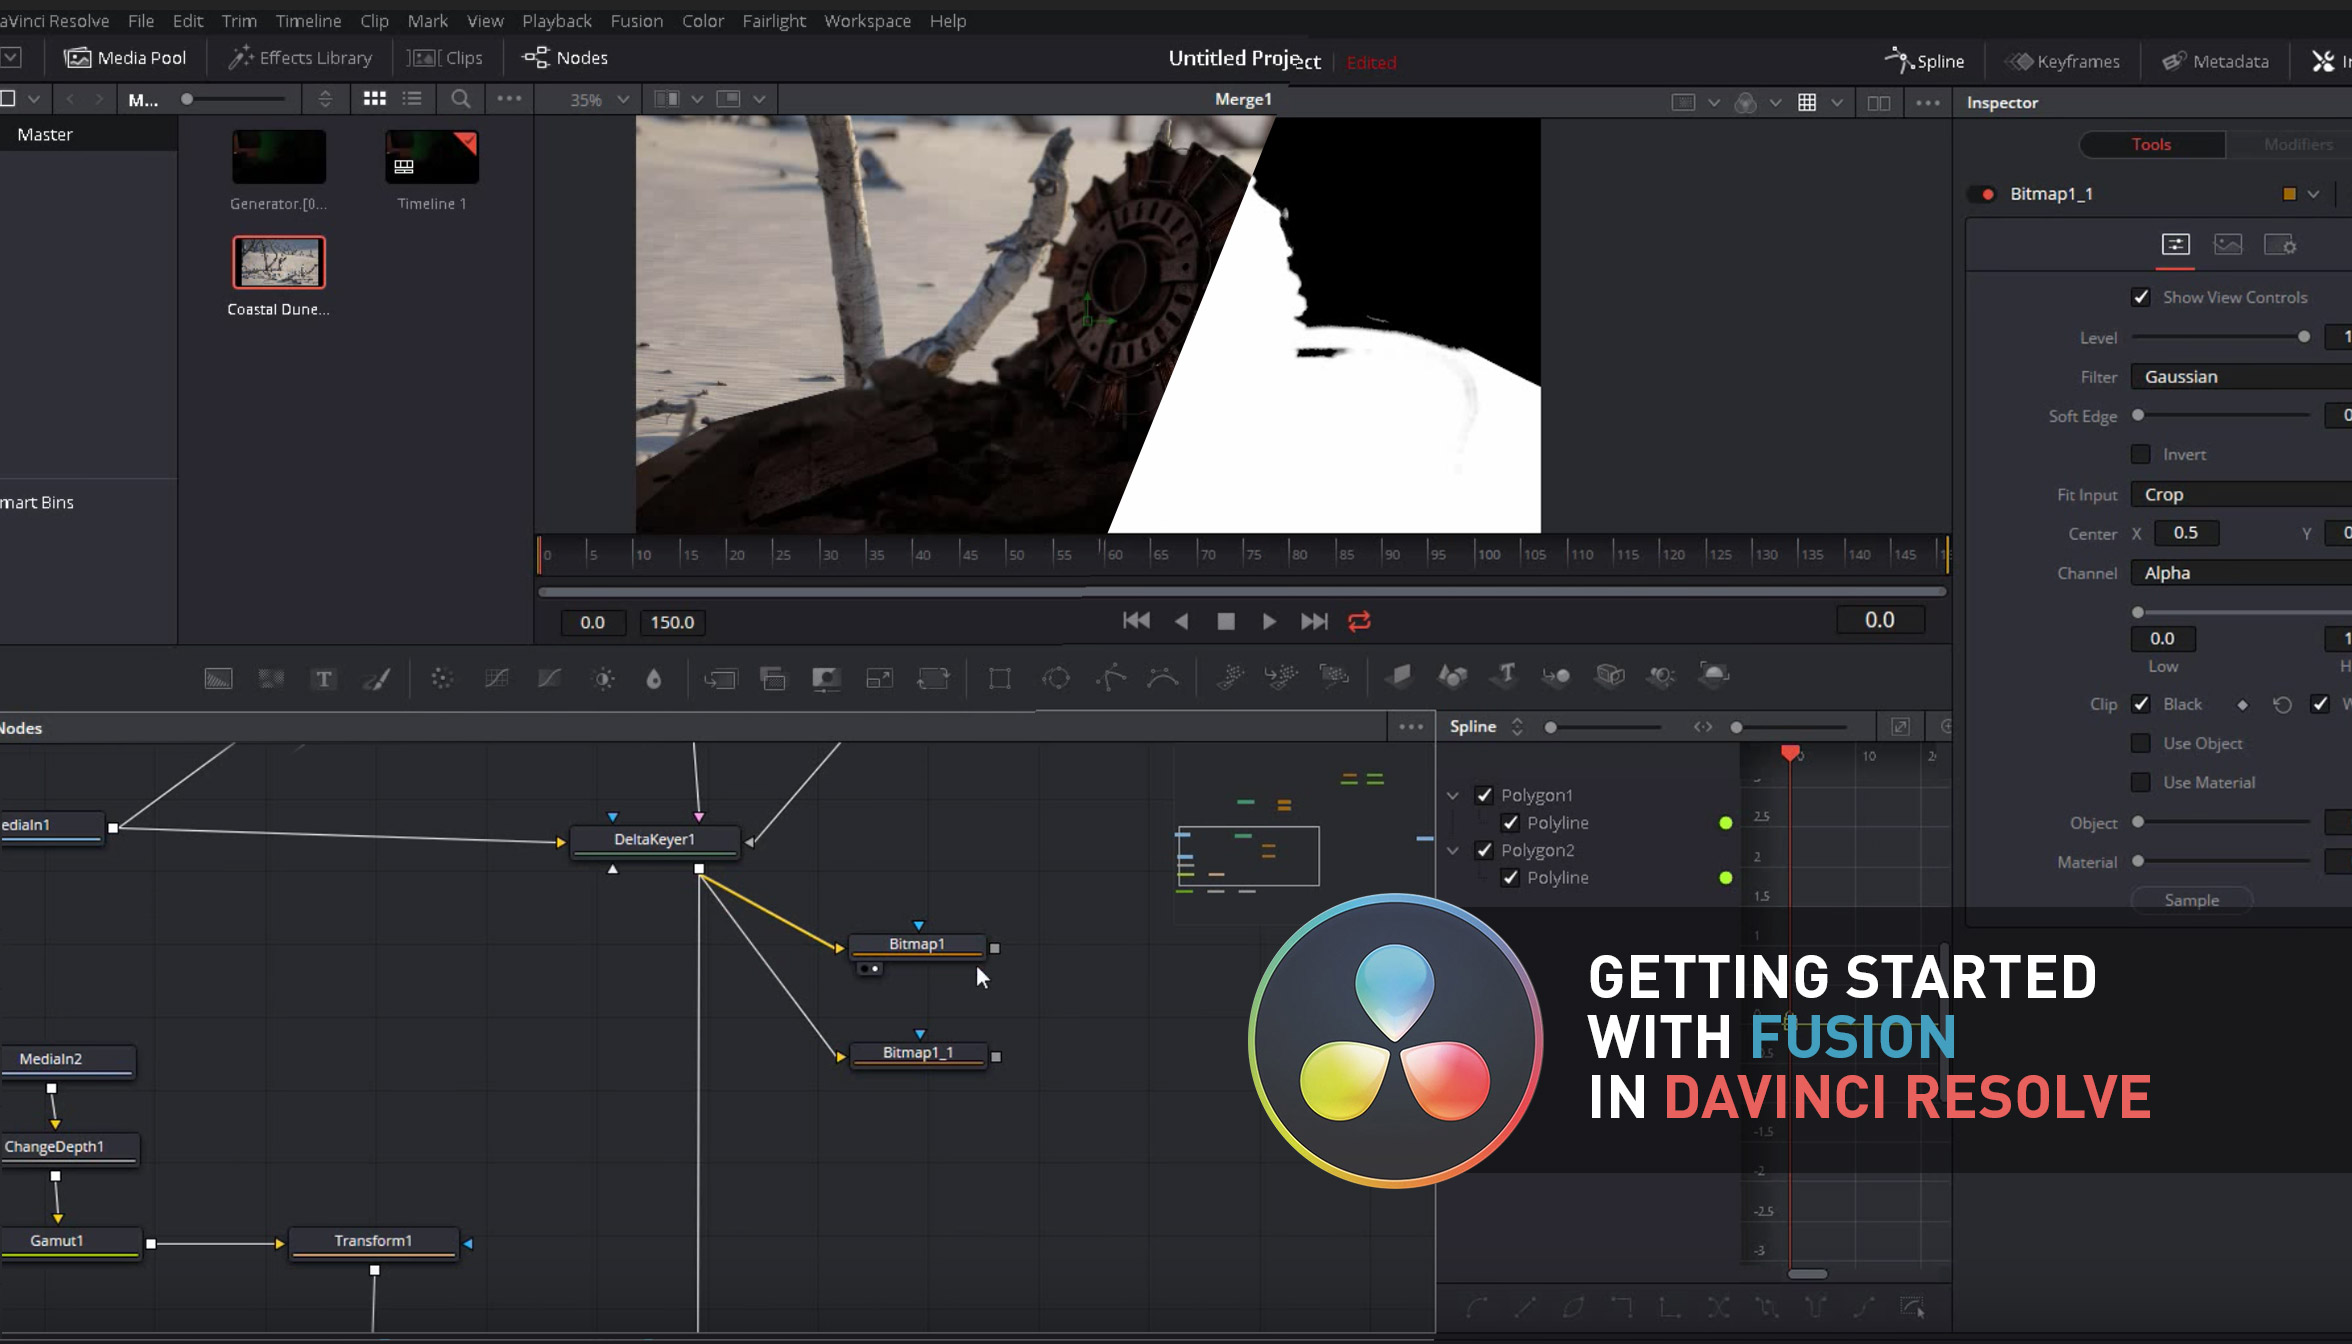 GETTING STARTED WITH FUSION IN DAVINCI RESOLVE